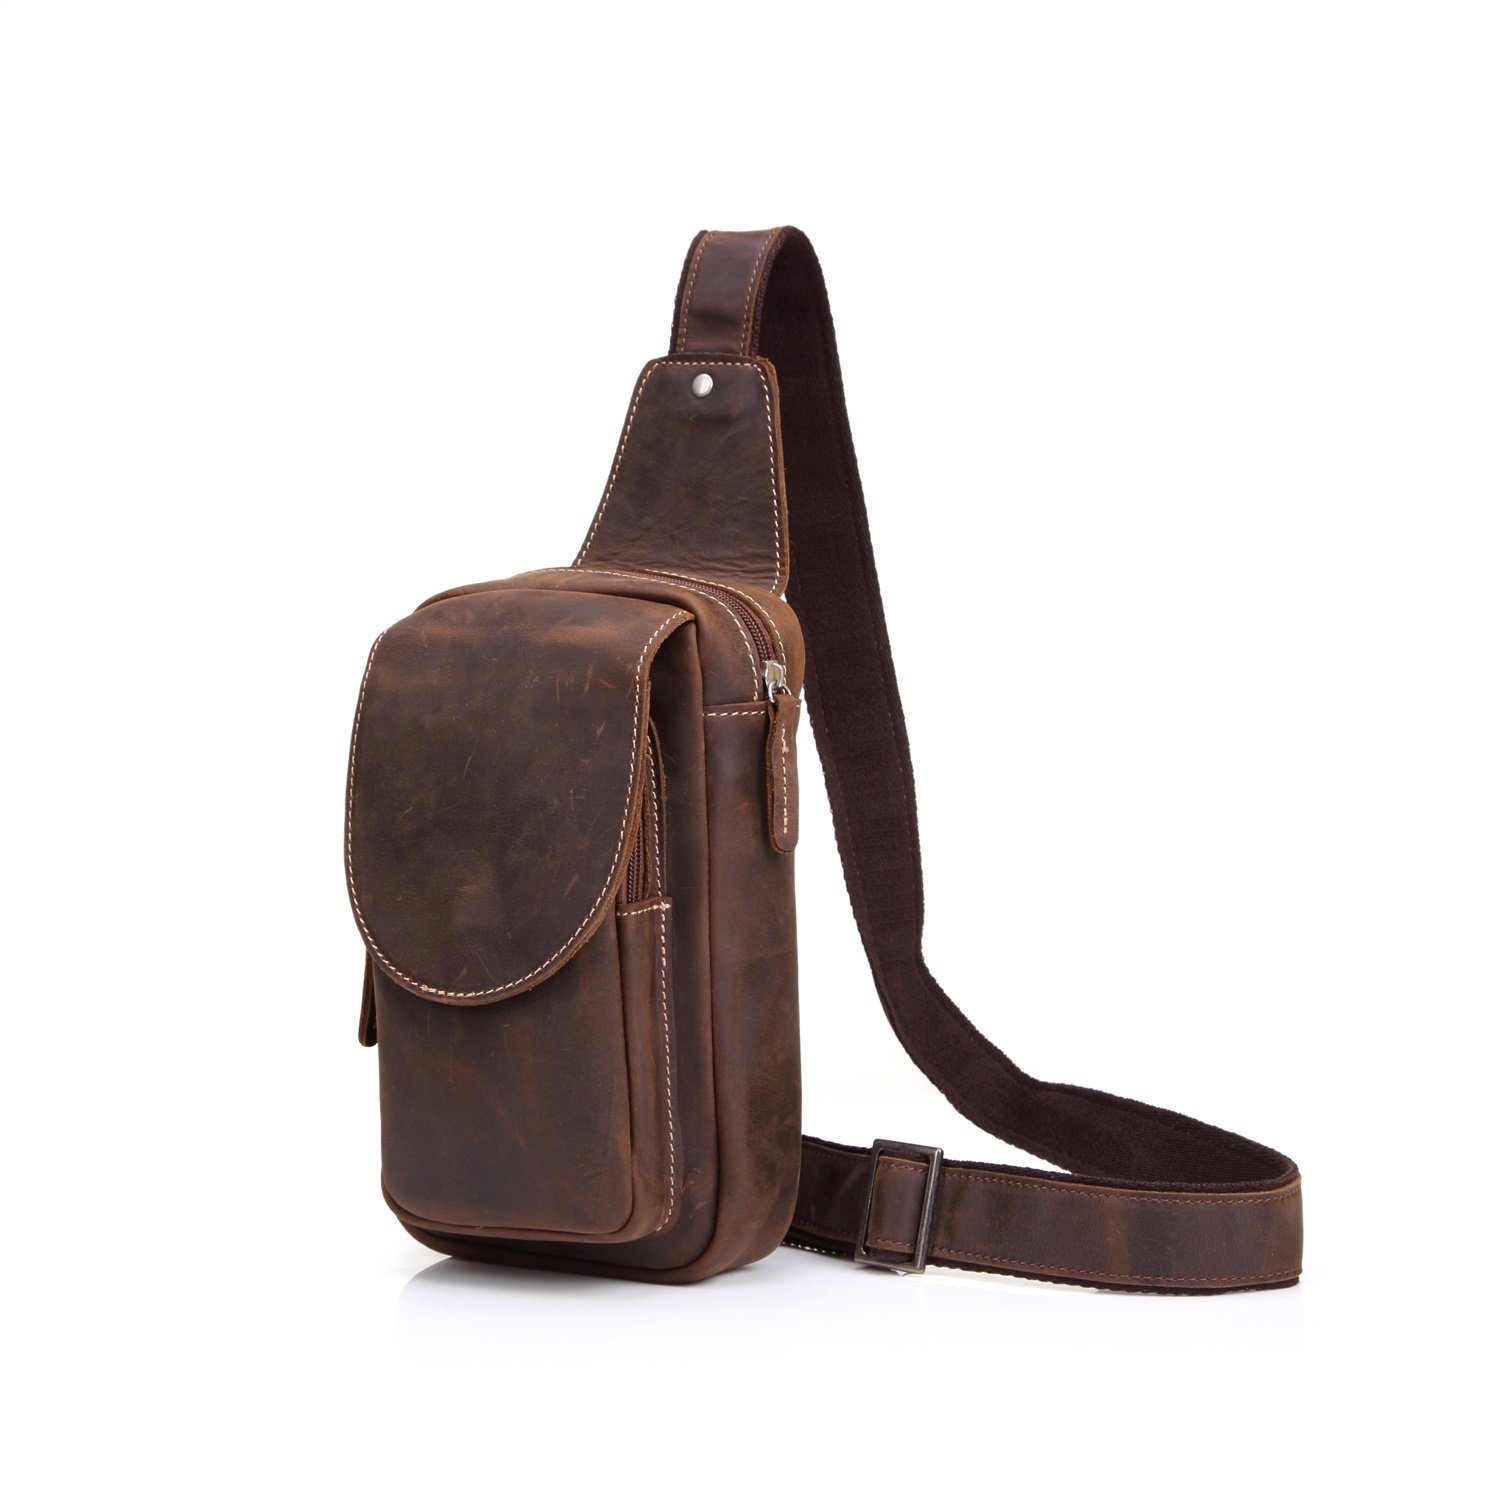 MUMUWU Vintage Leather Chest Bag Shoulder Bag Men's Crazy Horse Leather Messenger Bag Sports Leisure Leather (Color : Brown, Size : M)